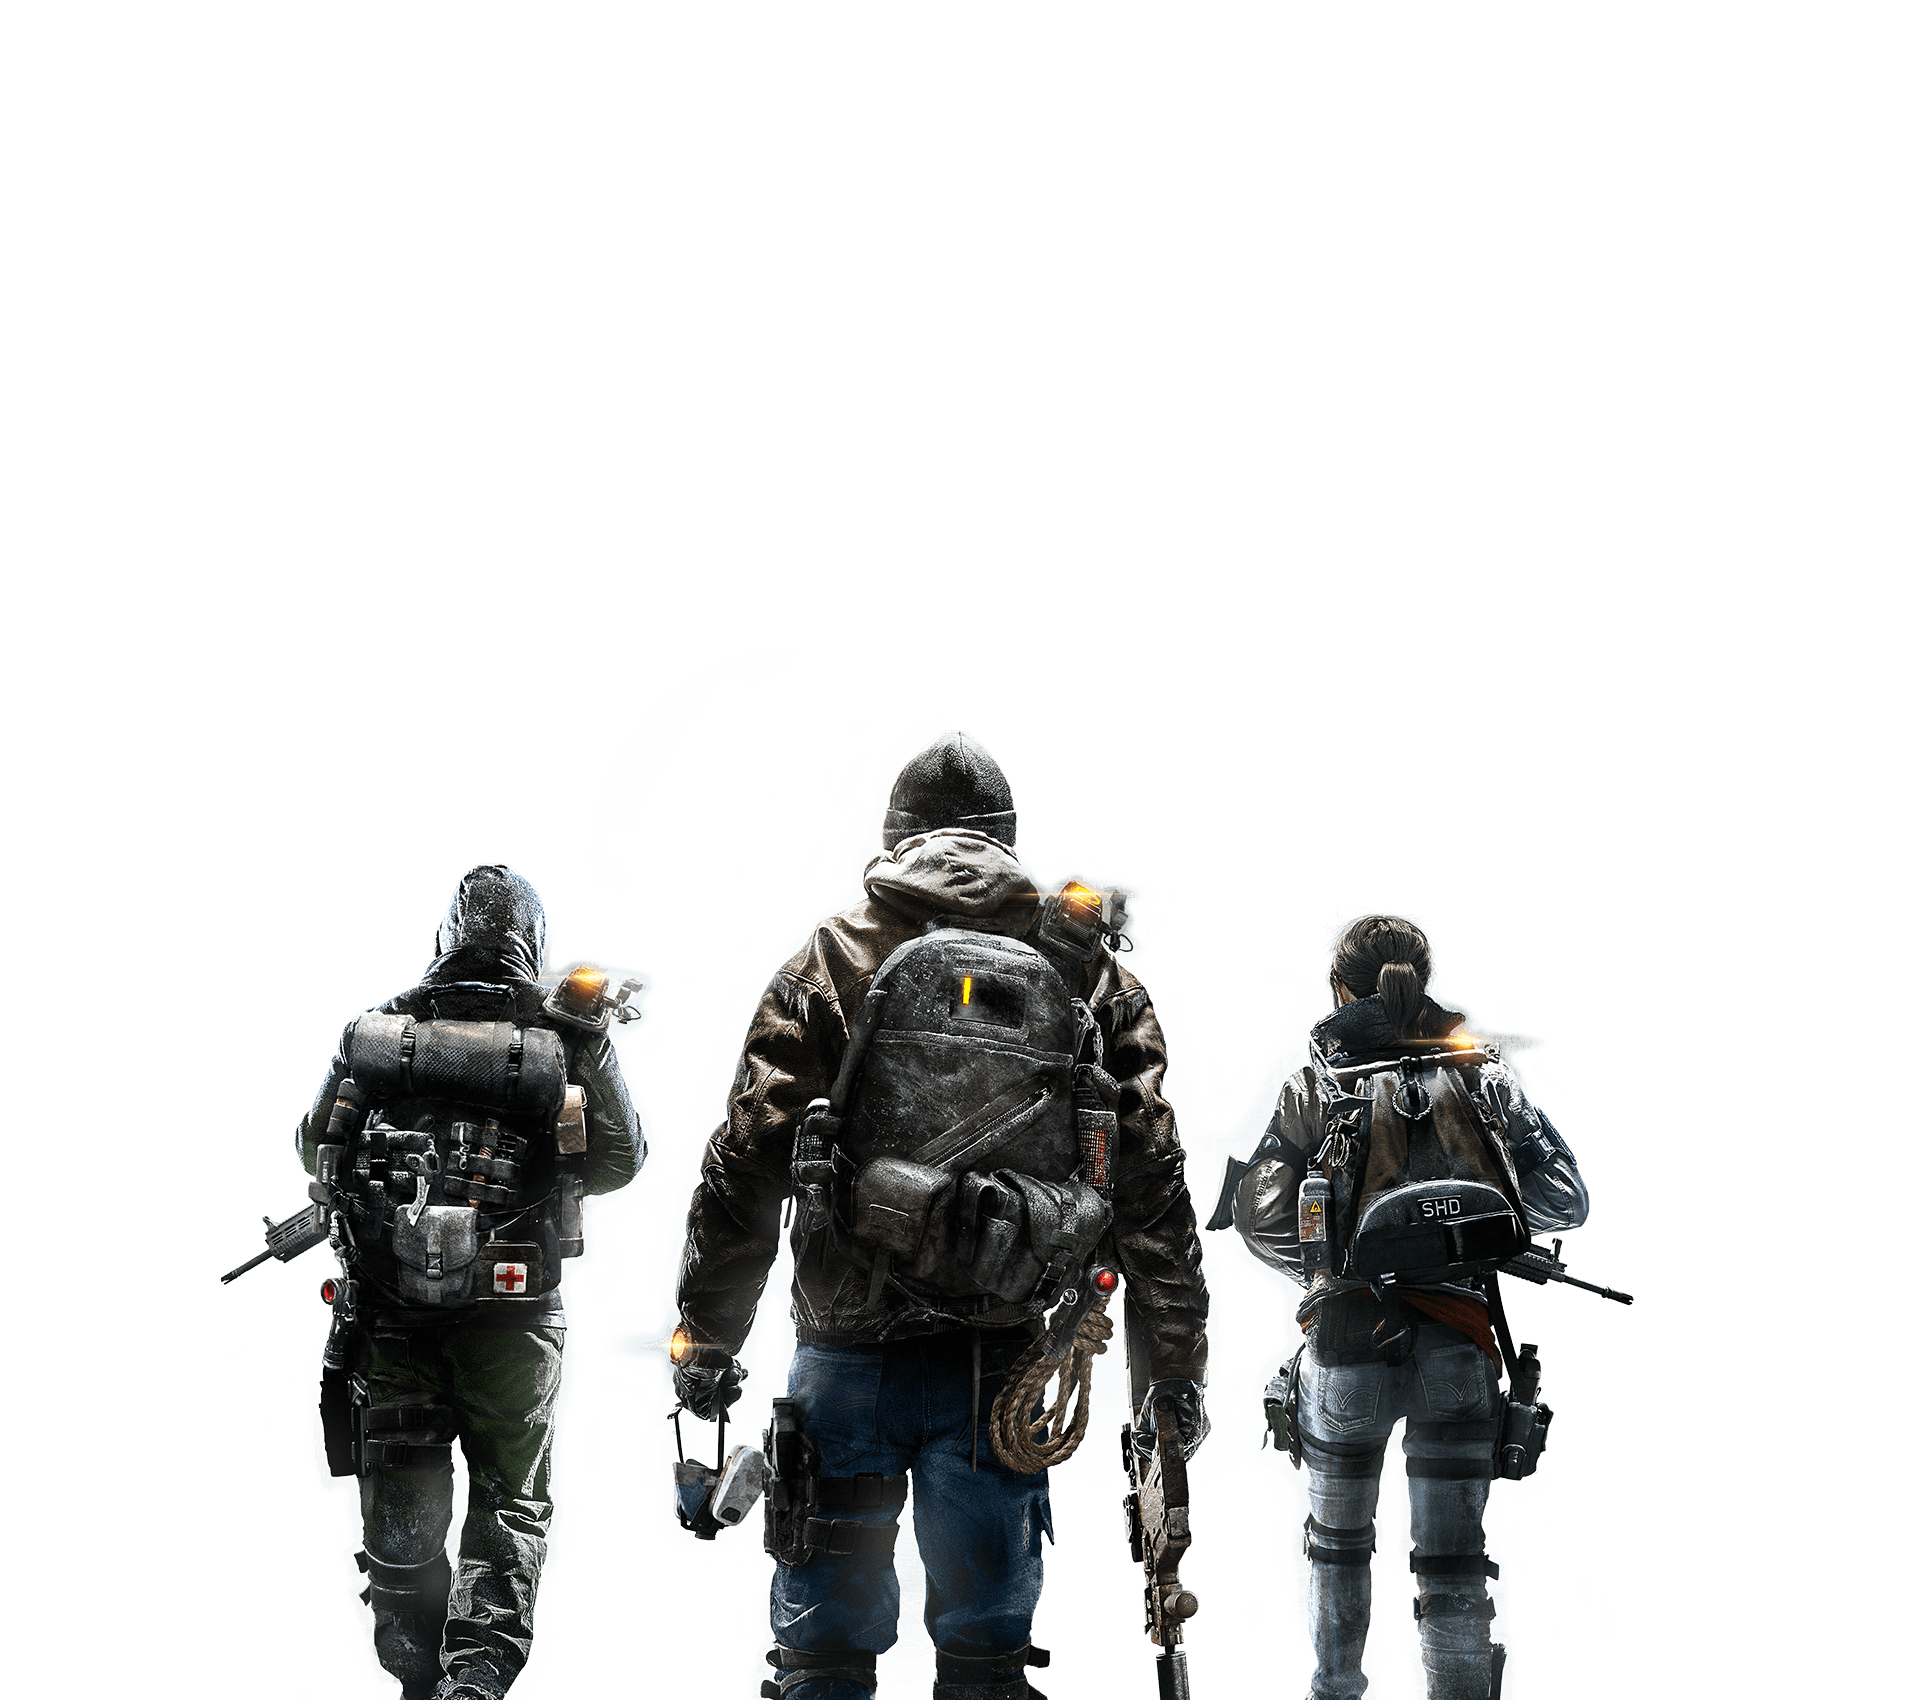 Tom Clancy S The Division 2 Xbox One Ps4 Stadia Pc Ubisoft Us Ps4 Or Xbox One Tom Clancy The Division Division